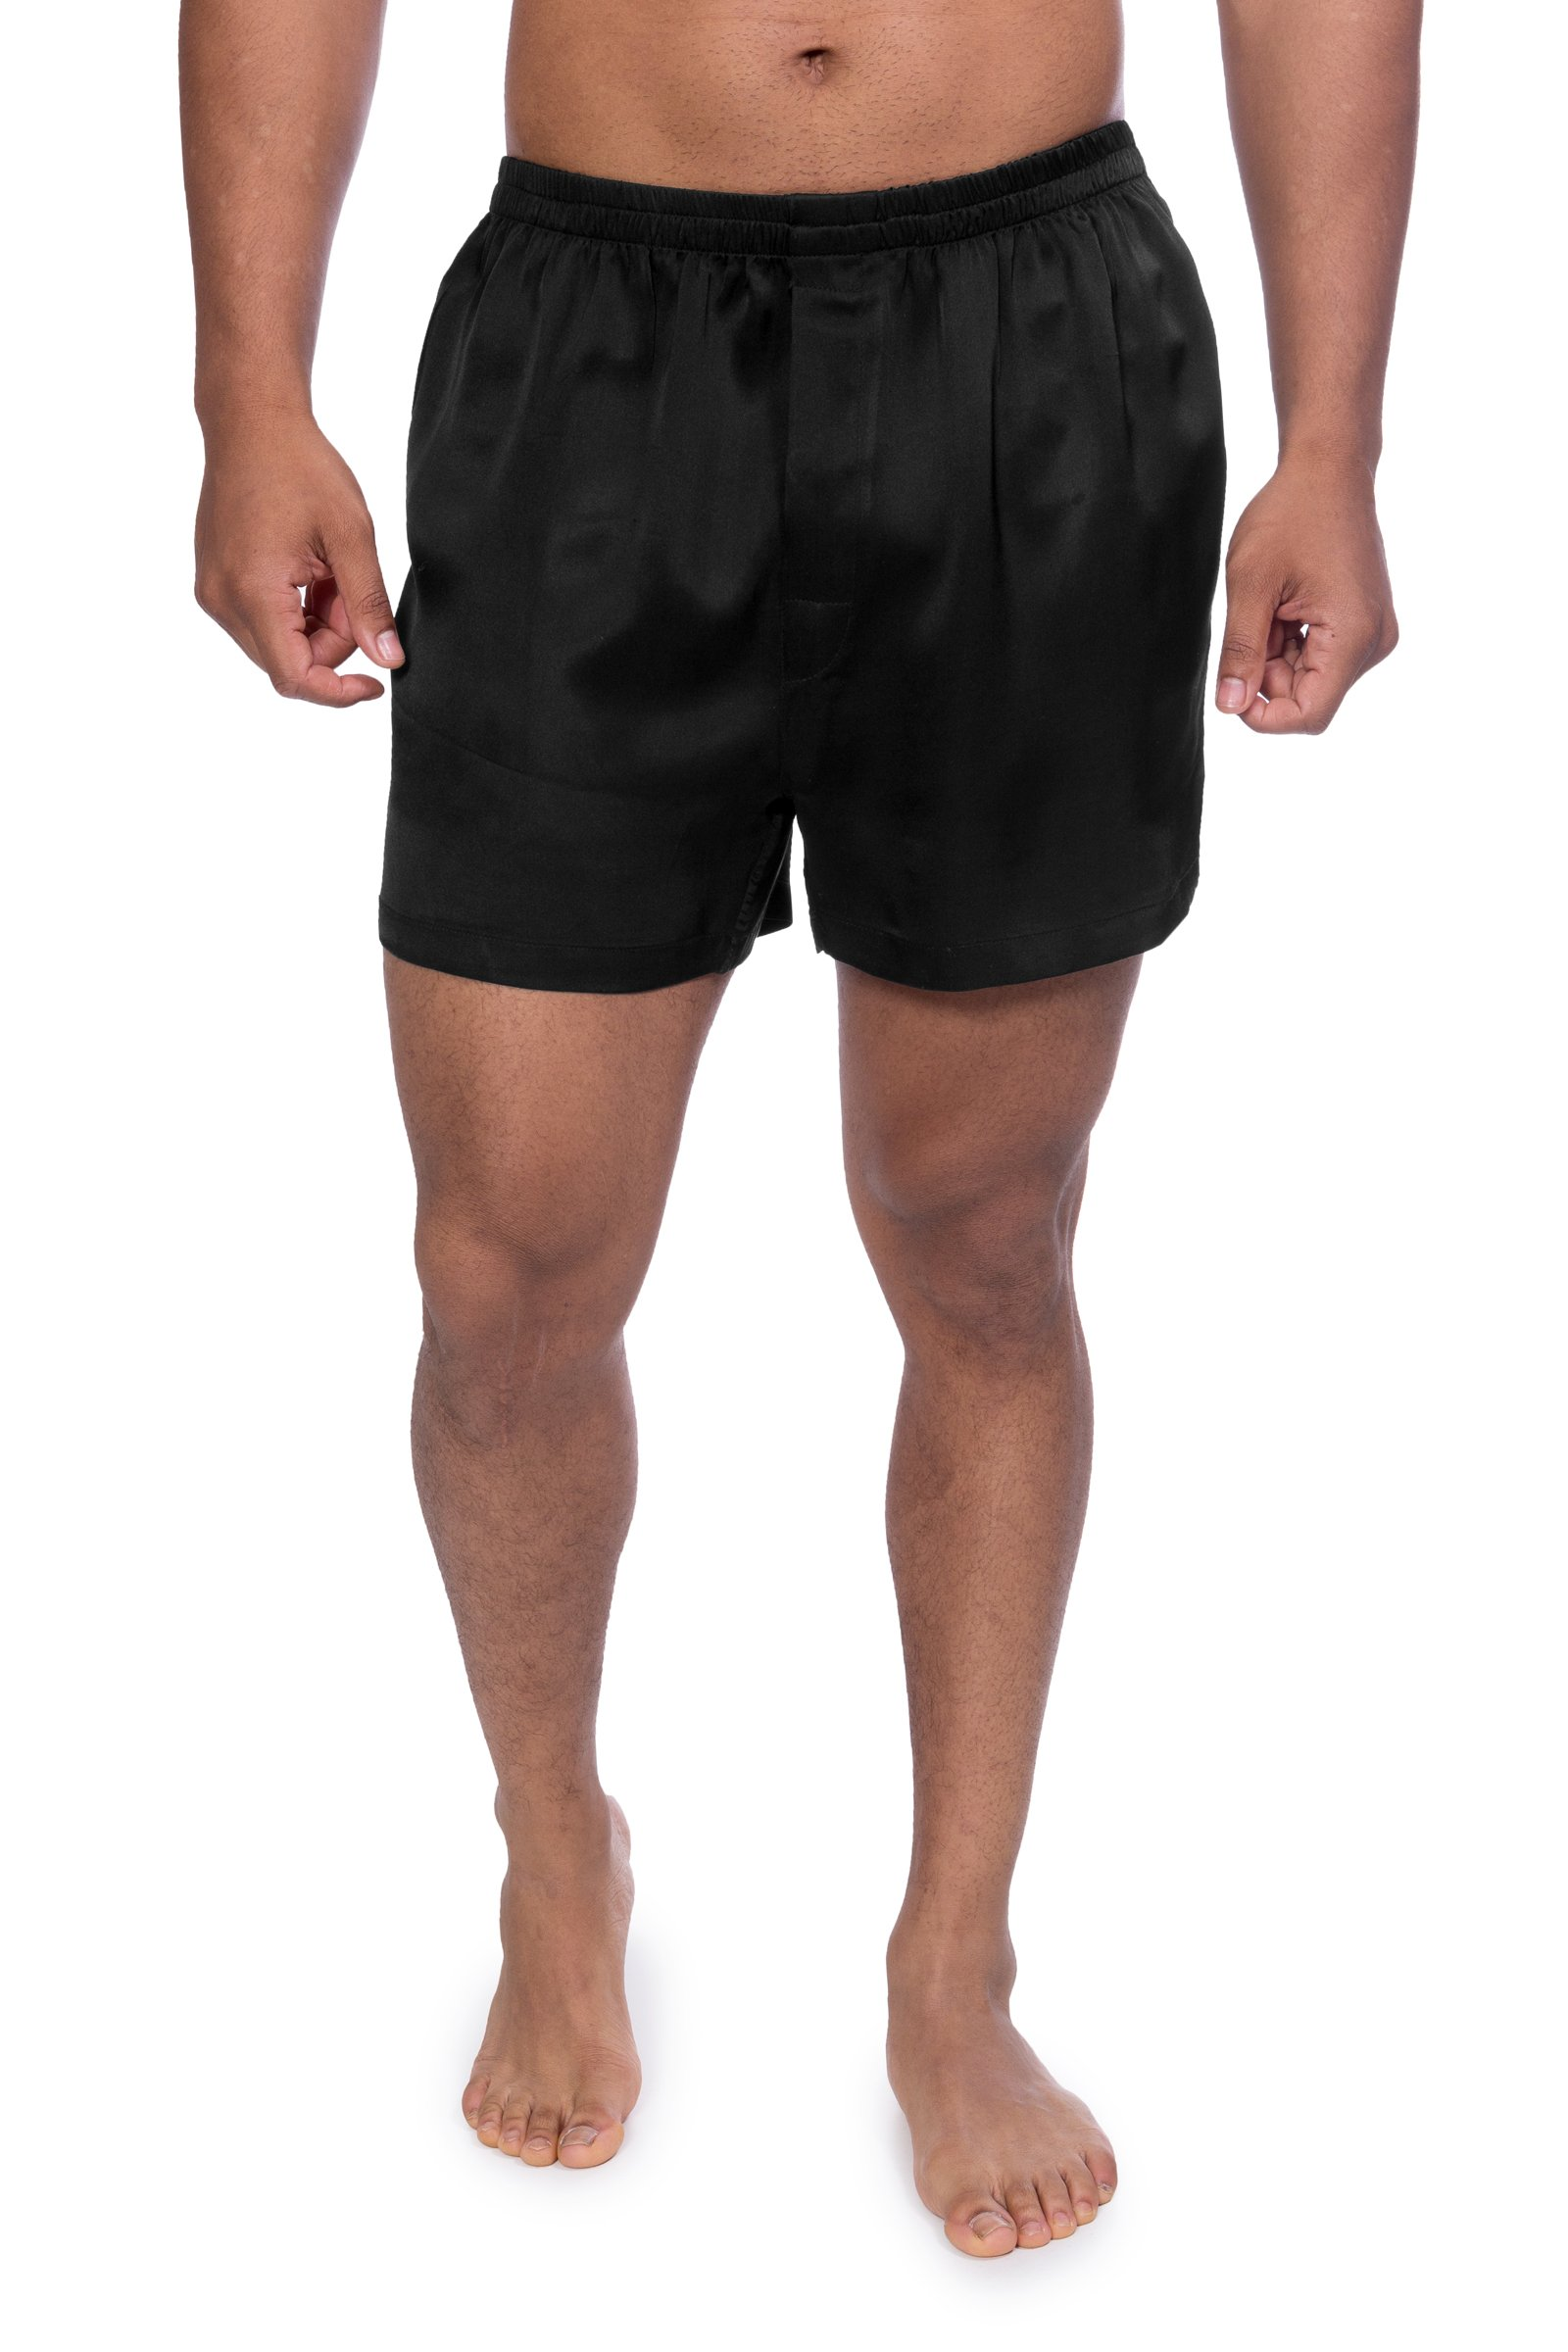 TexereSilk Men's 100% Silk Dress Boxers - Underwear for Men by (Board Room, Black, Large) Romantic Gifts for Men MS6102-BLK-L